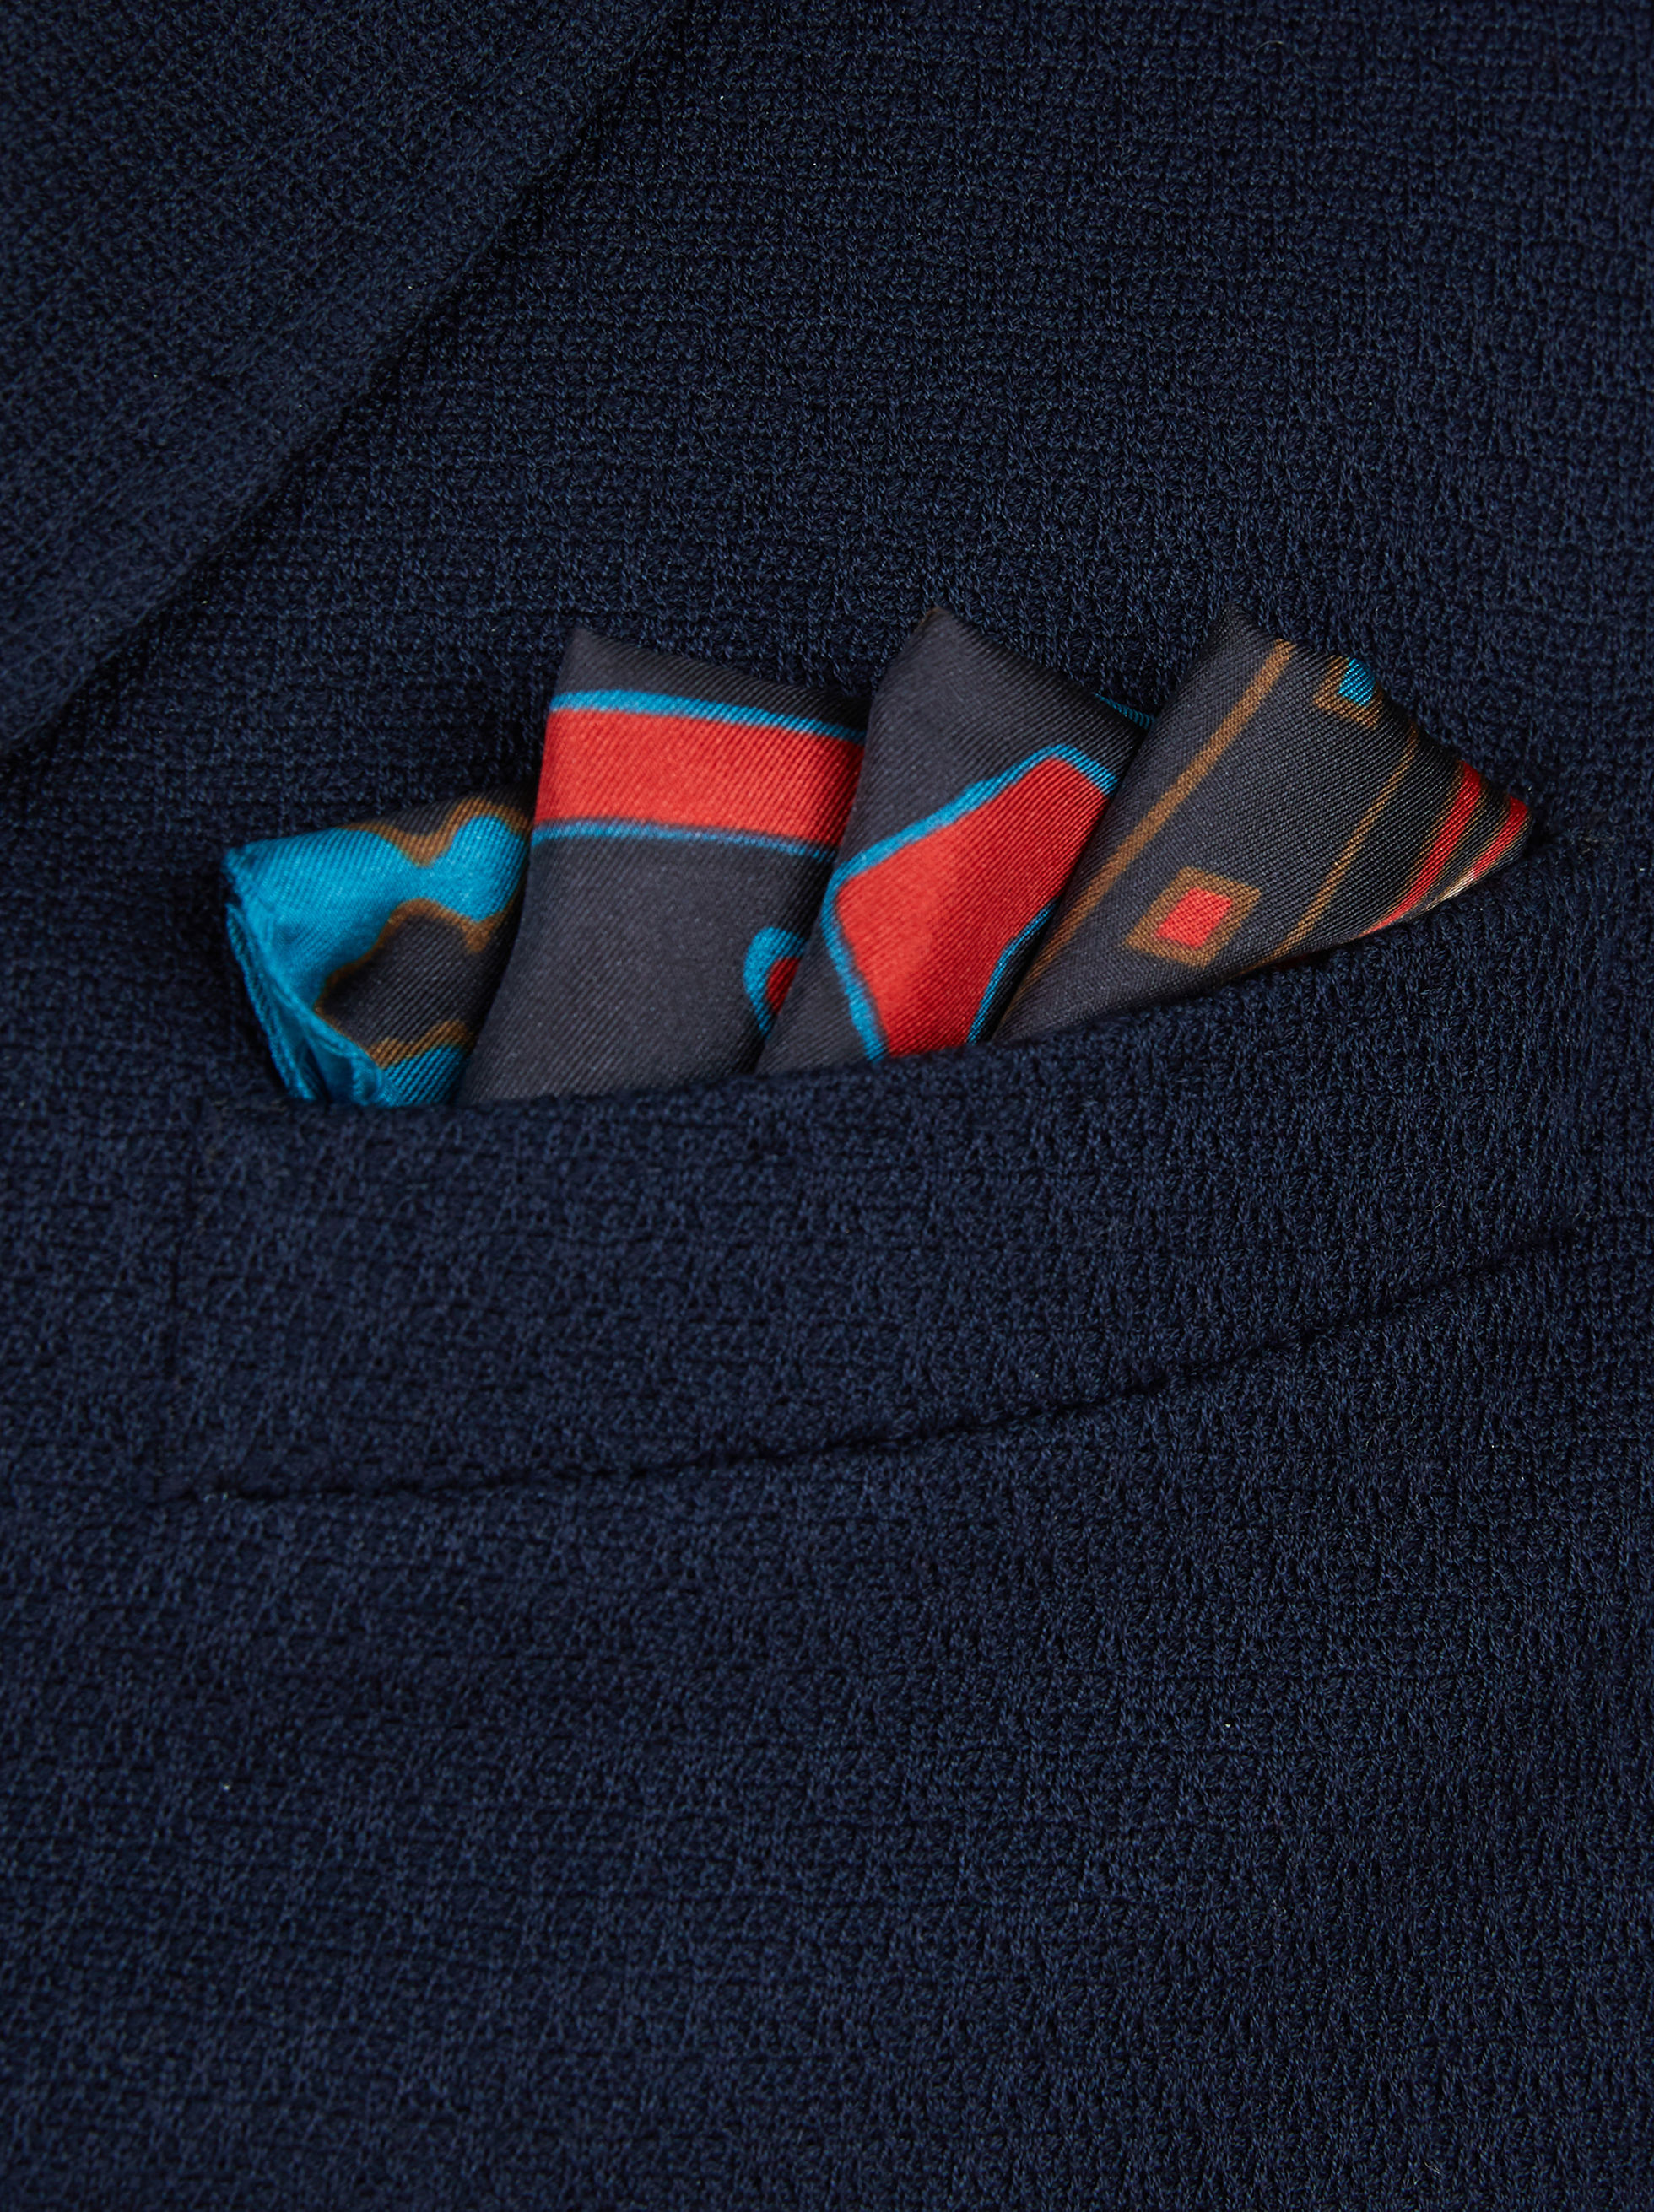 POCKET SQUARE WITH CARPET PRINT